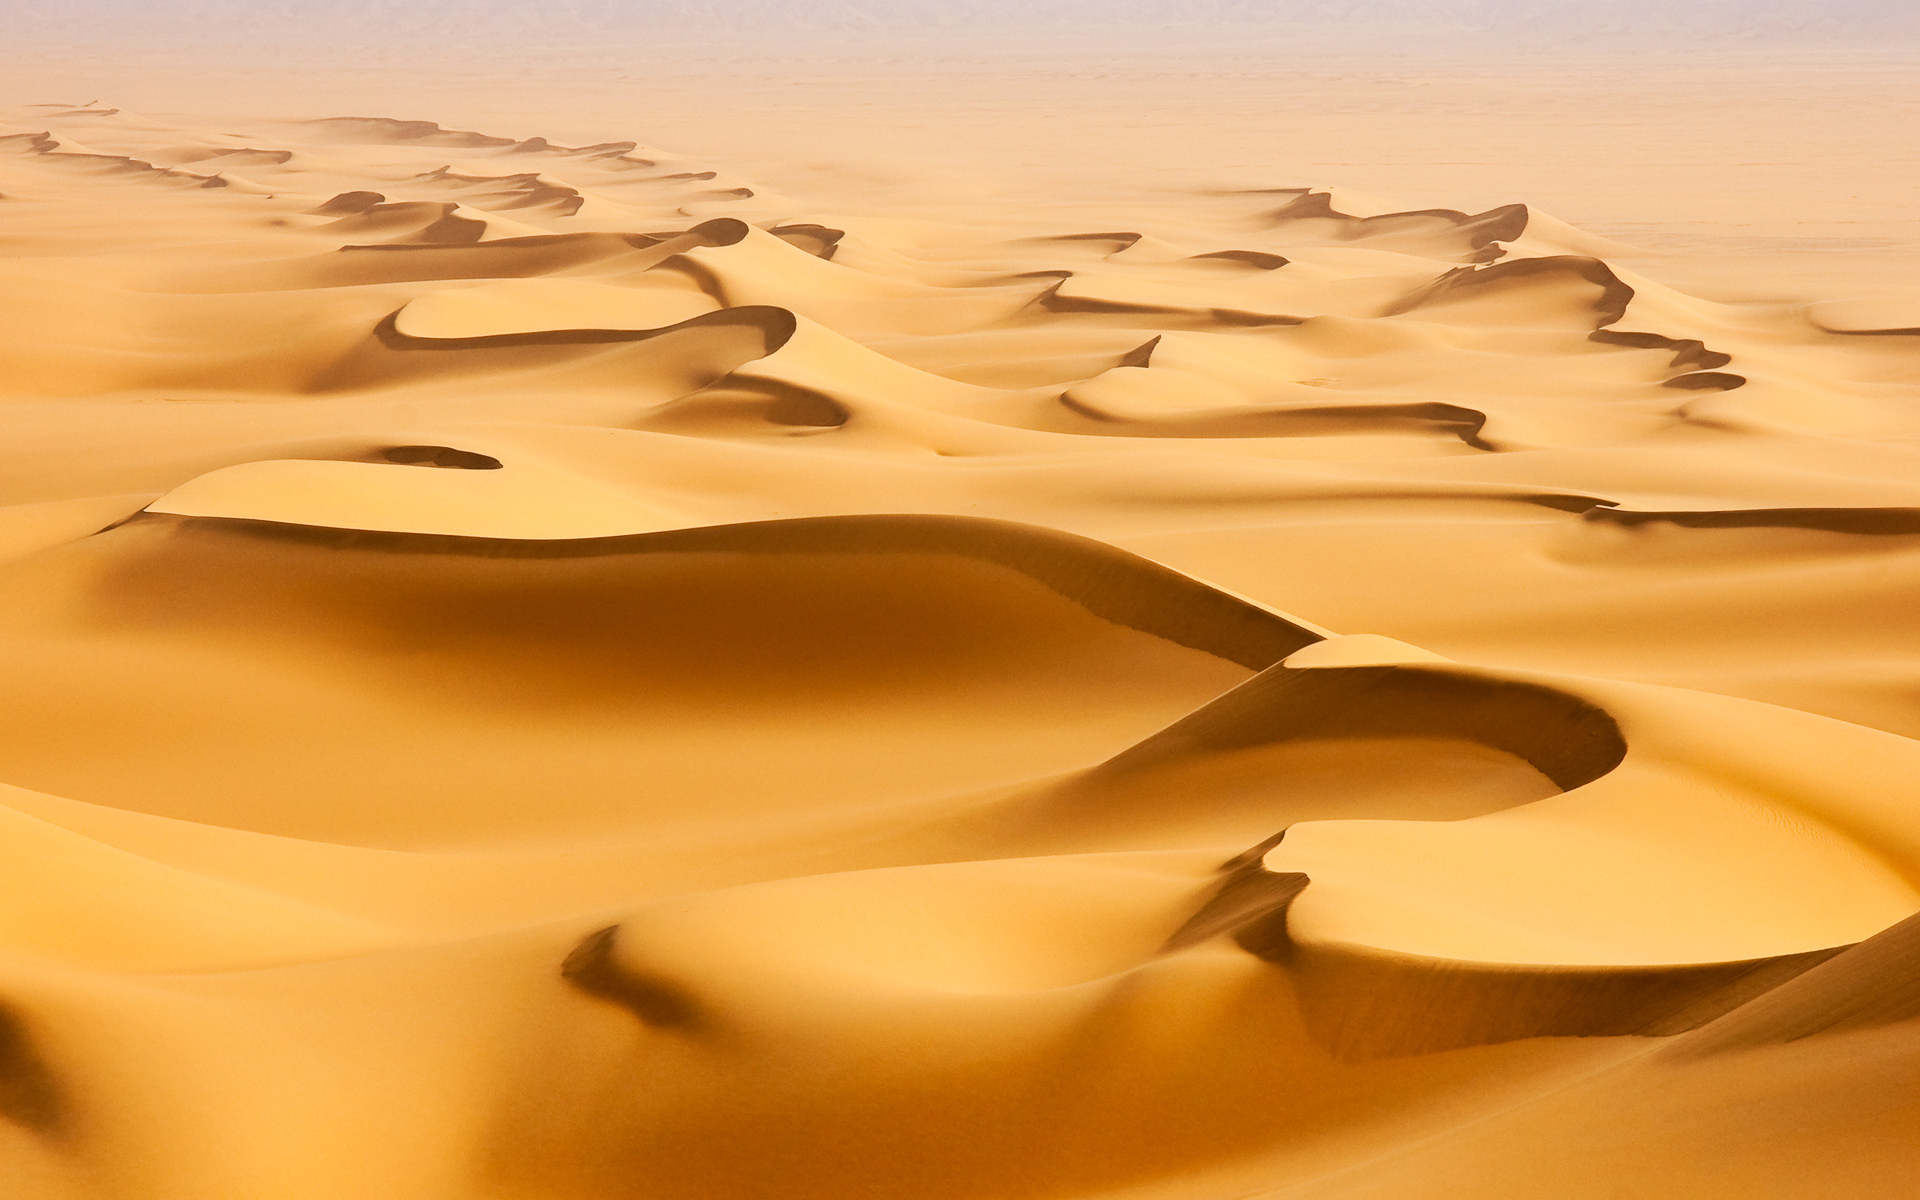 Cool Desert Sand Wallpaper